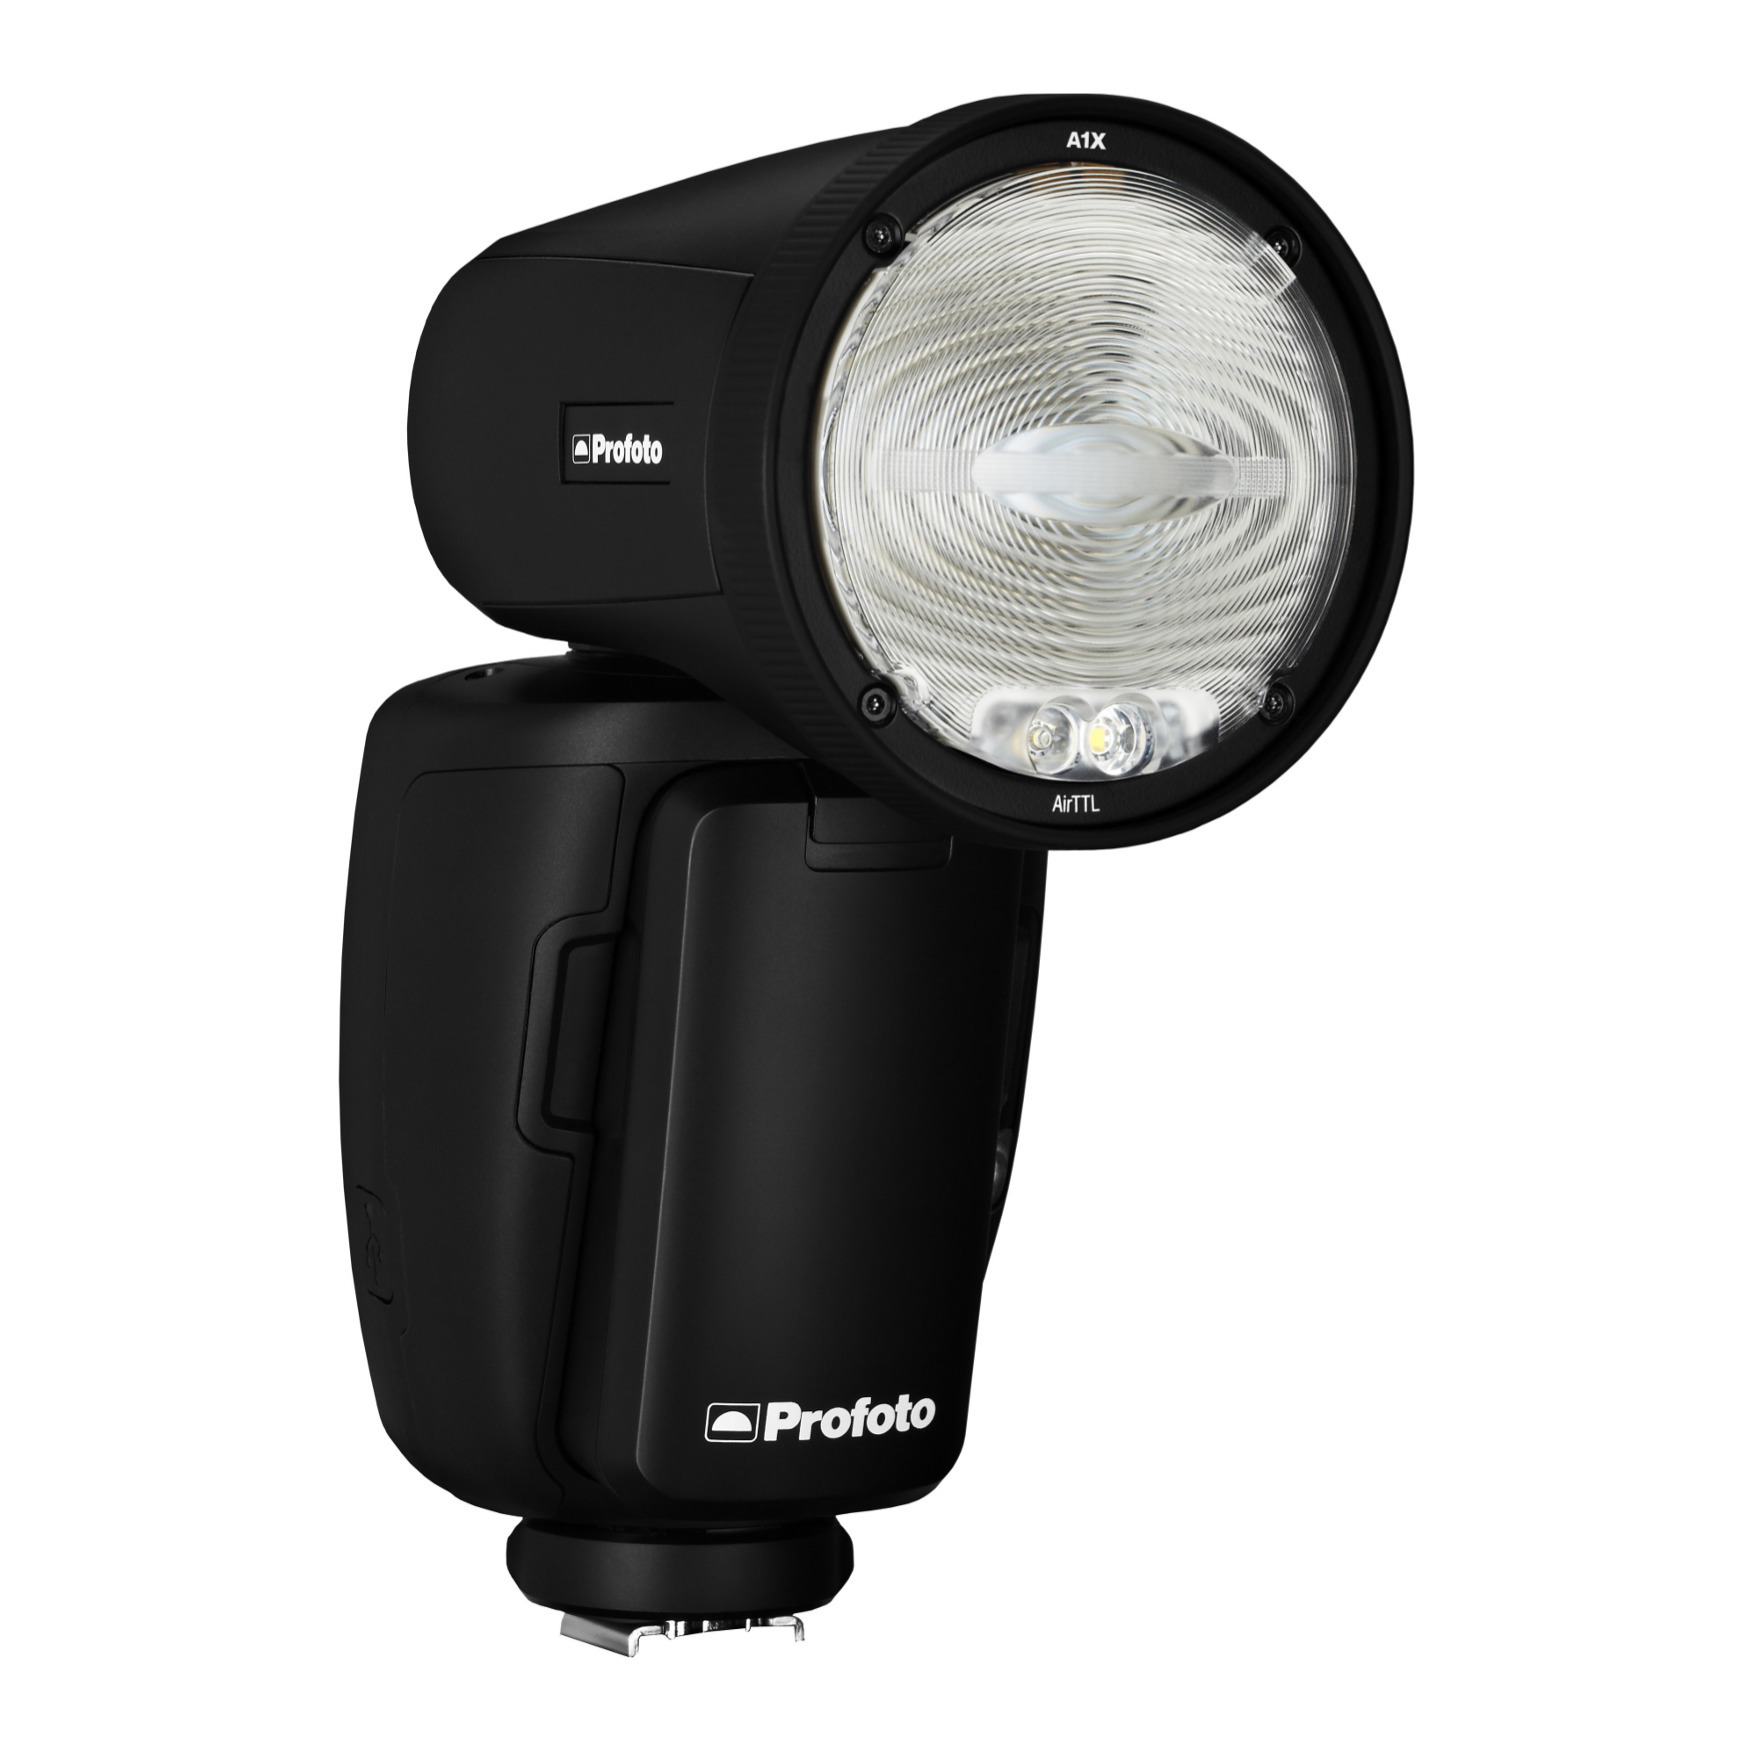 (PRE-ORDER) Profoto A1X AirTTL-S Remote and On-camera Flash (Sony) 901206